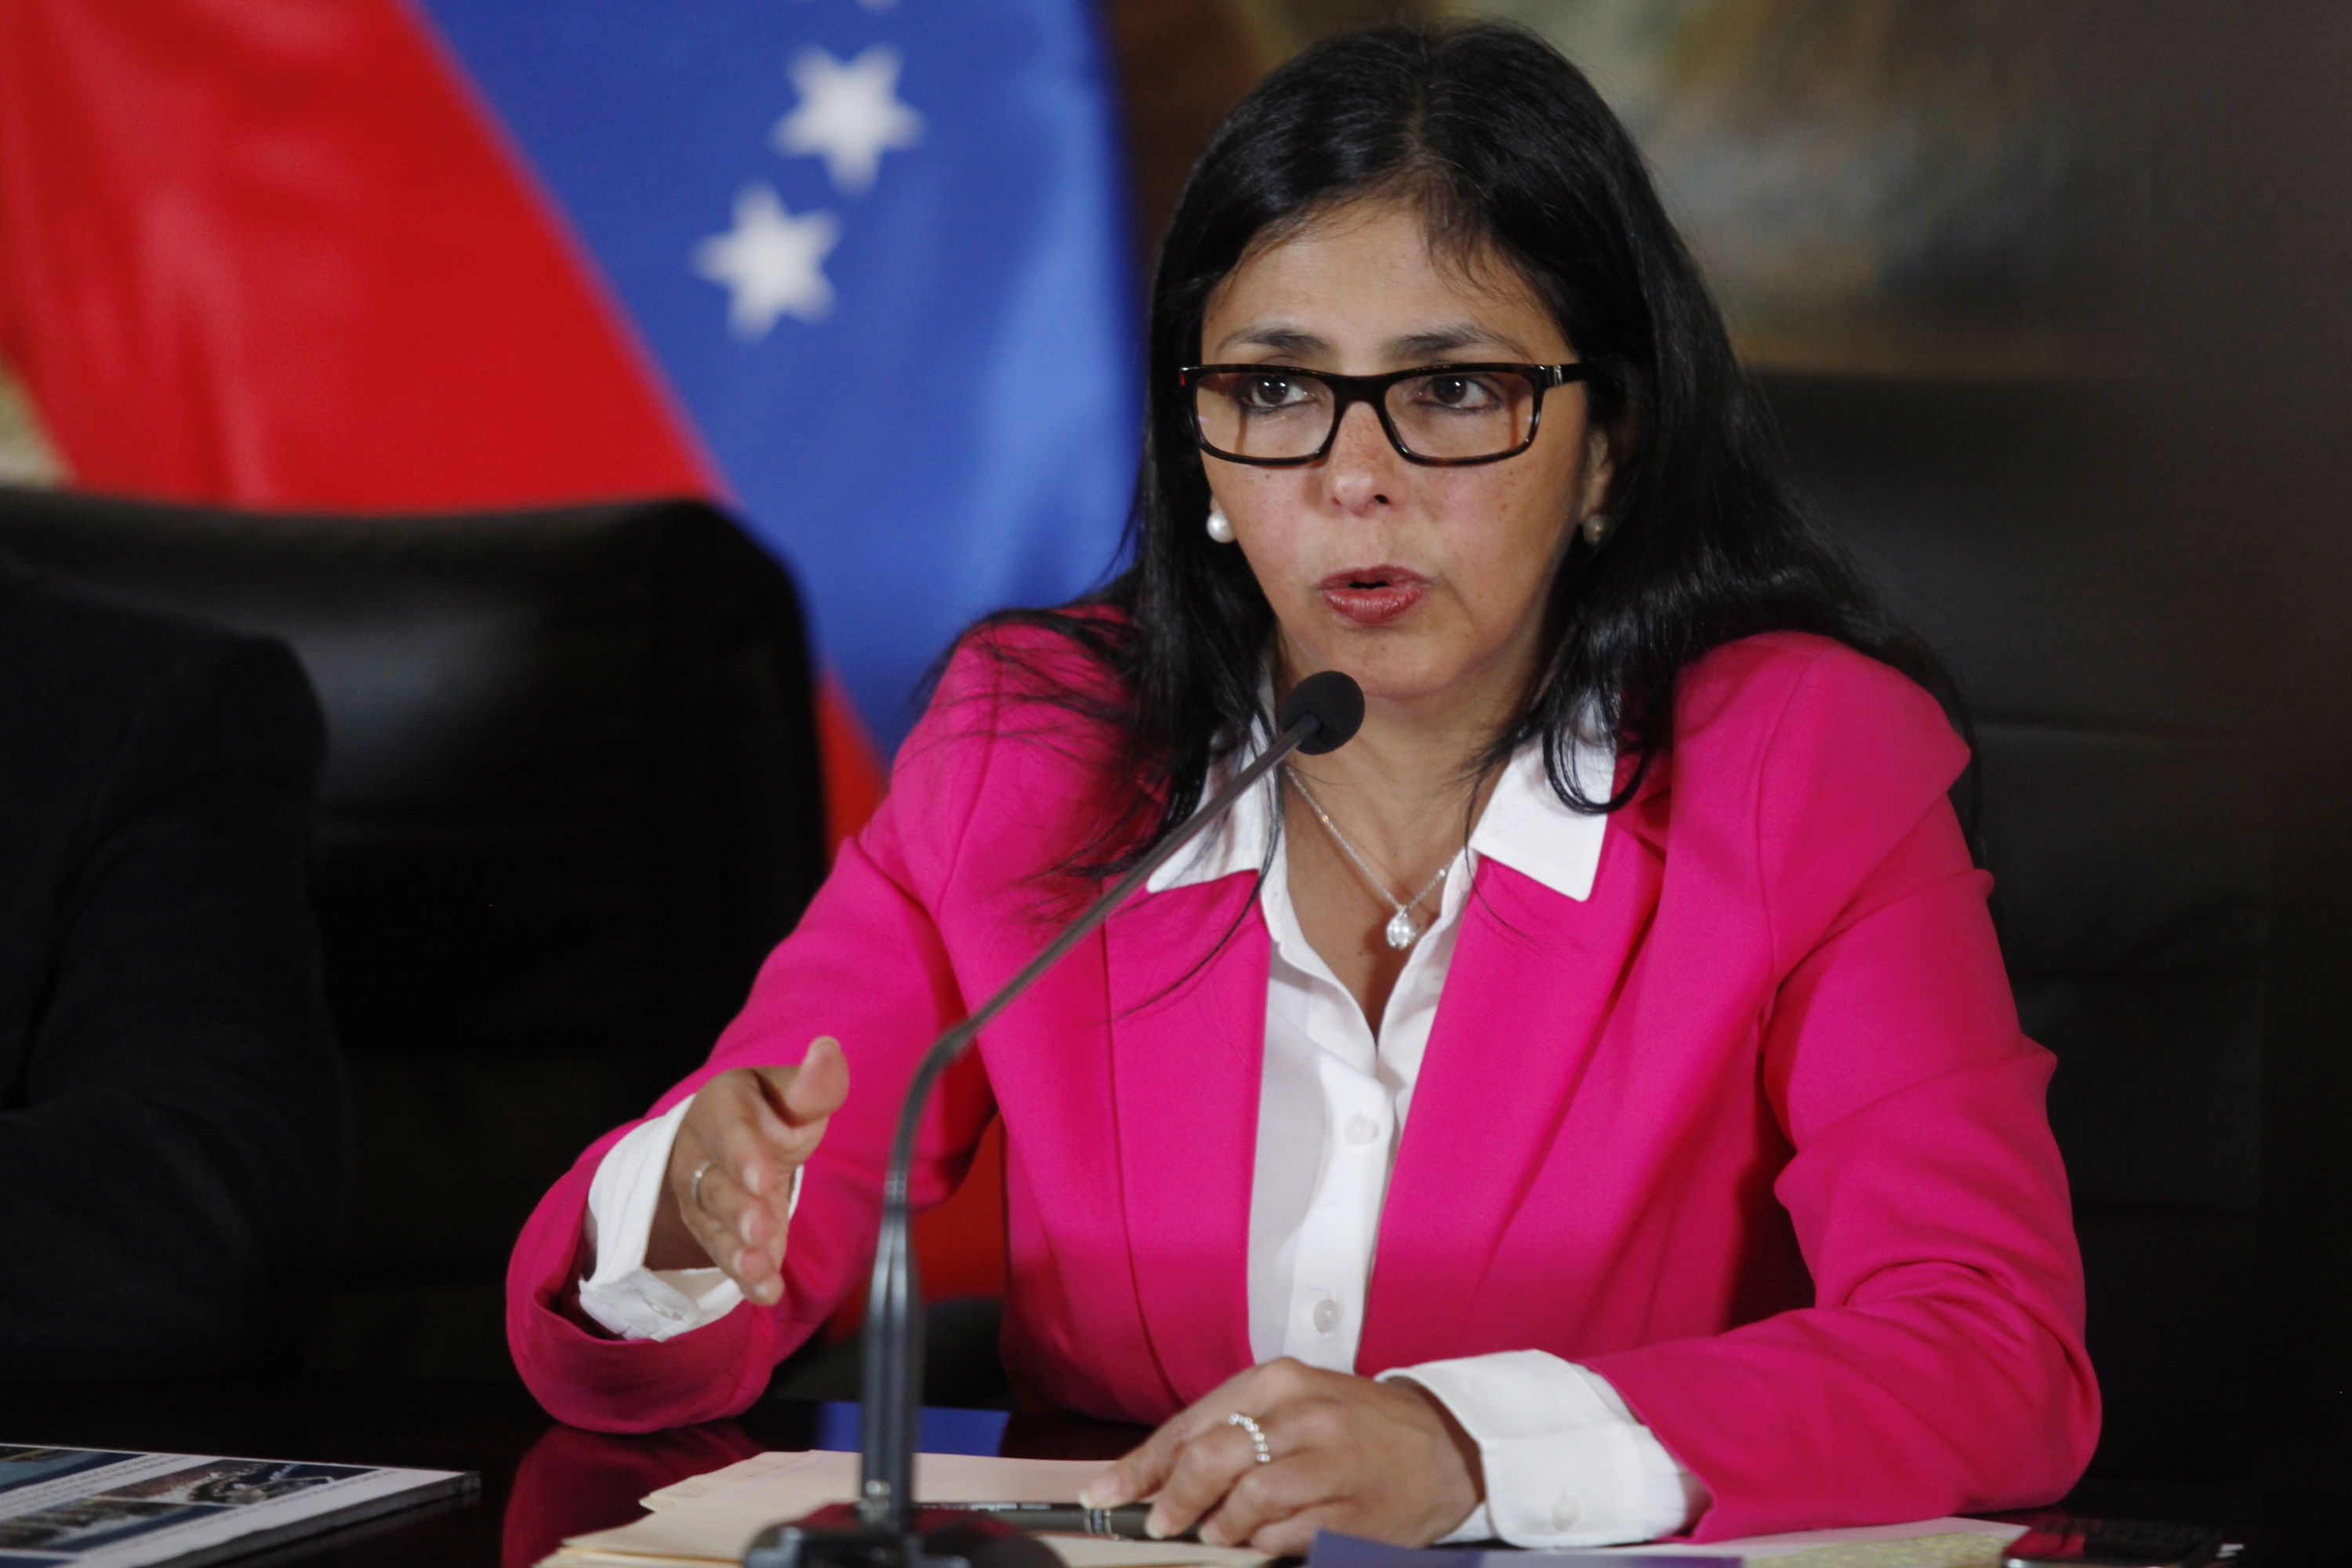 Image result for Delcy Rodriguez, venezuela, photos